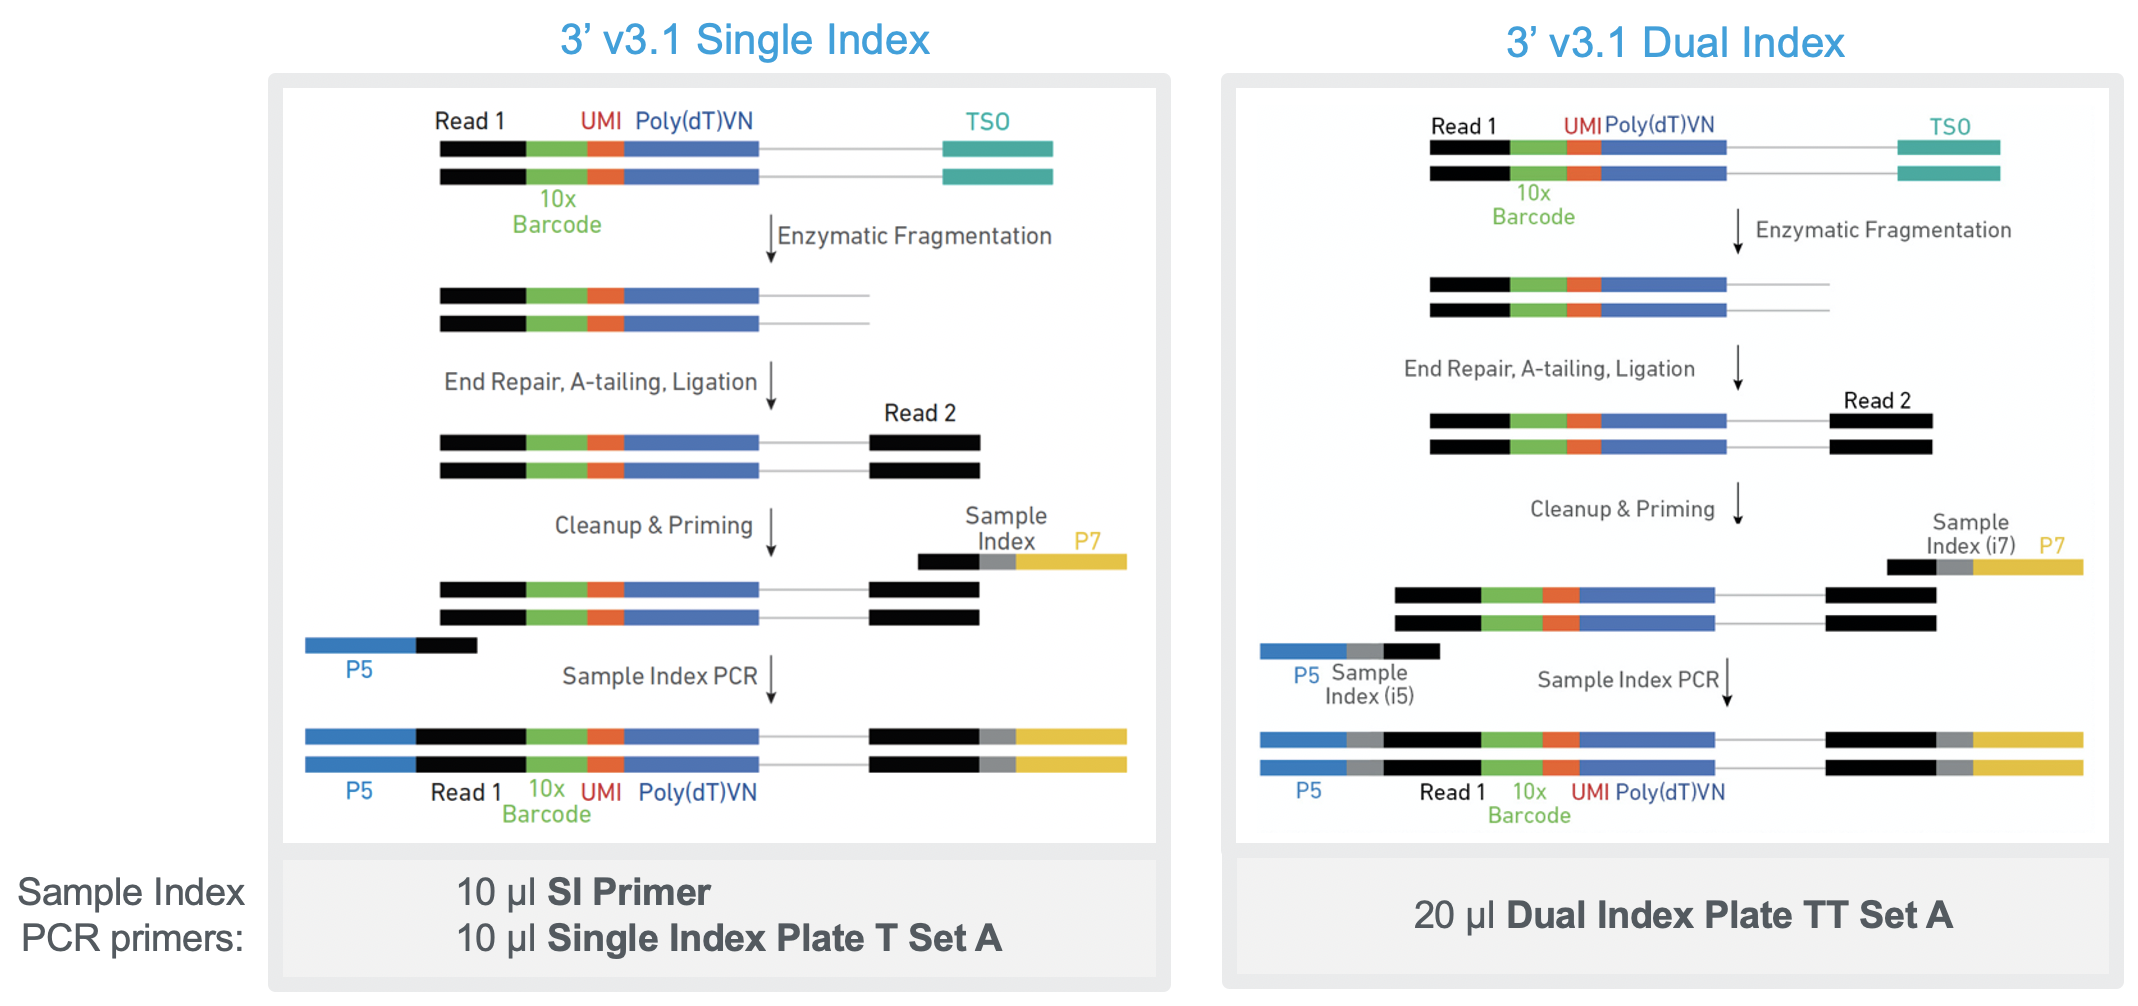 Gene_Expression_Single_Dual_index.png